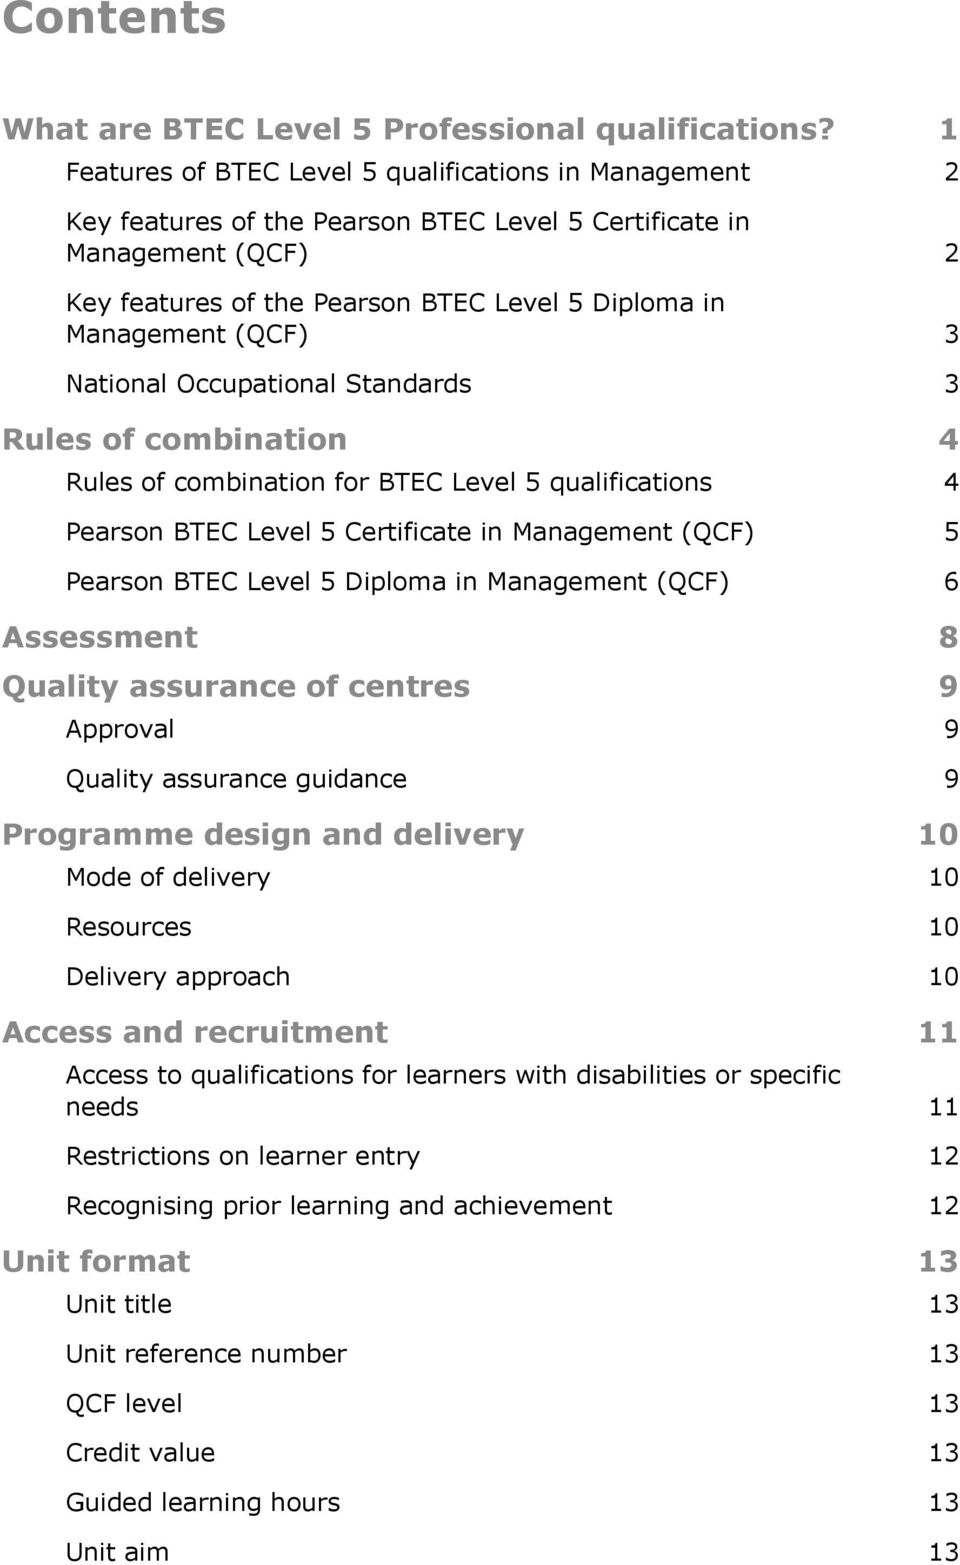 pearson btec level certificate in management qcf pearson btec qcf 3 national occupational standards 3 rules of combination 4 rules of combination for